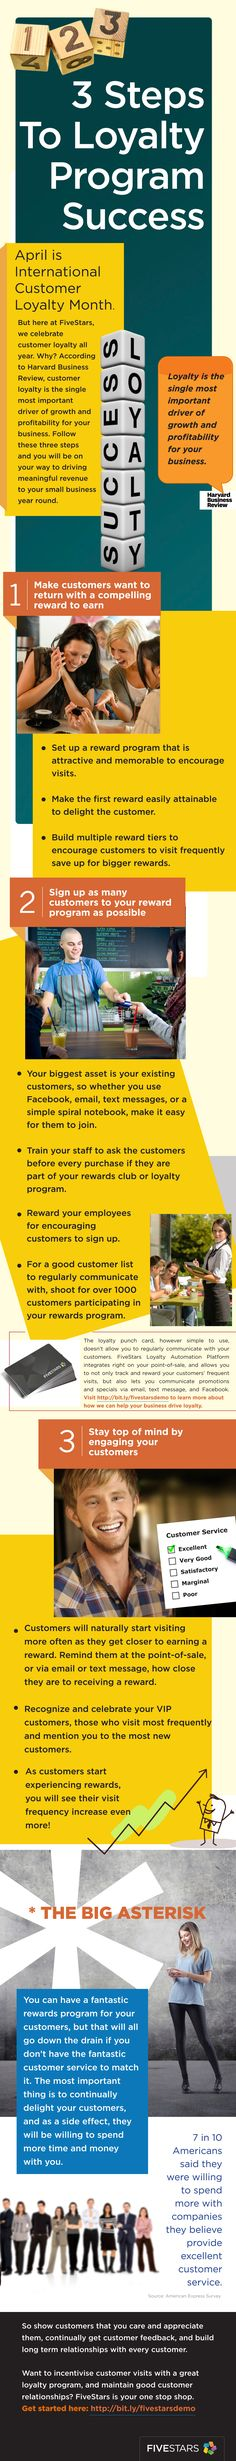 3 Steps To Customer Loyalty Program Success - @FiveStars Blog #infographic